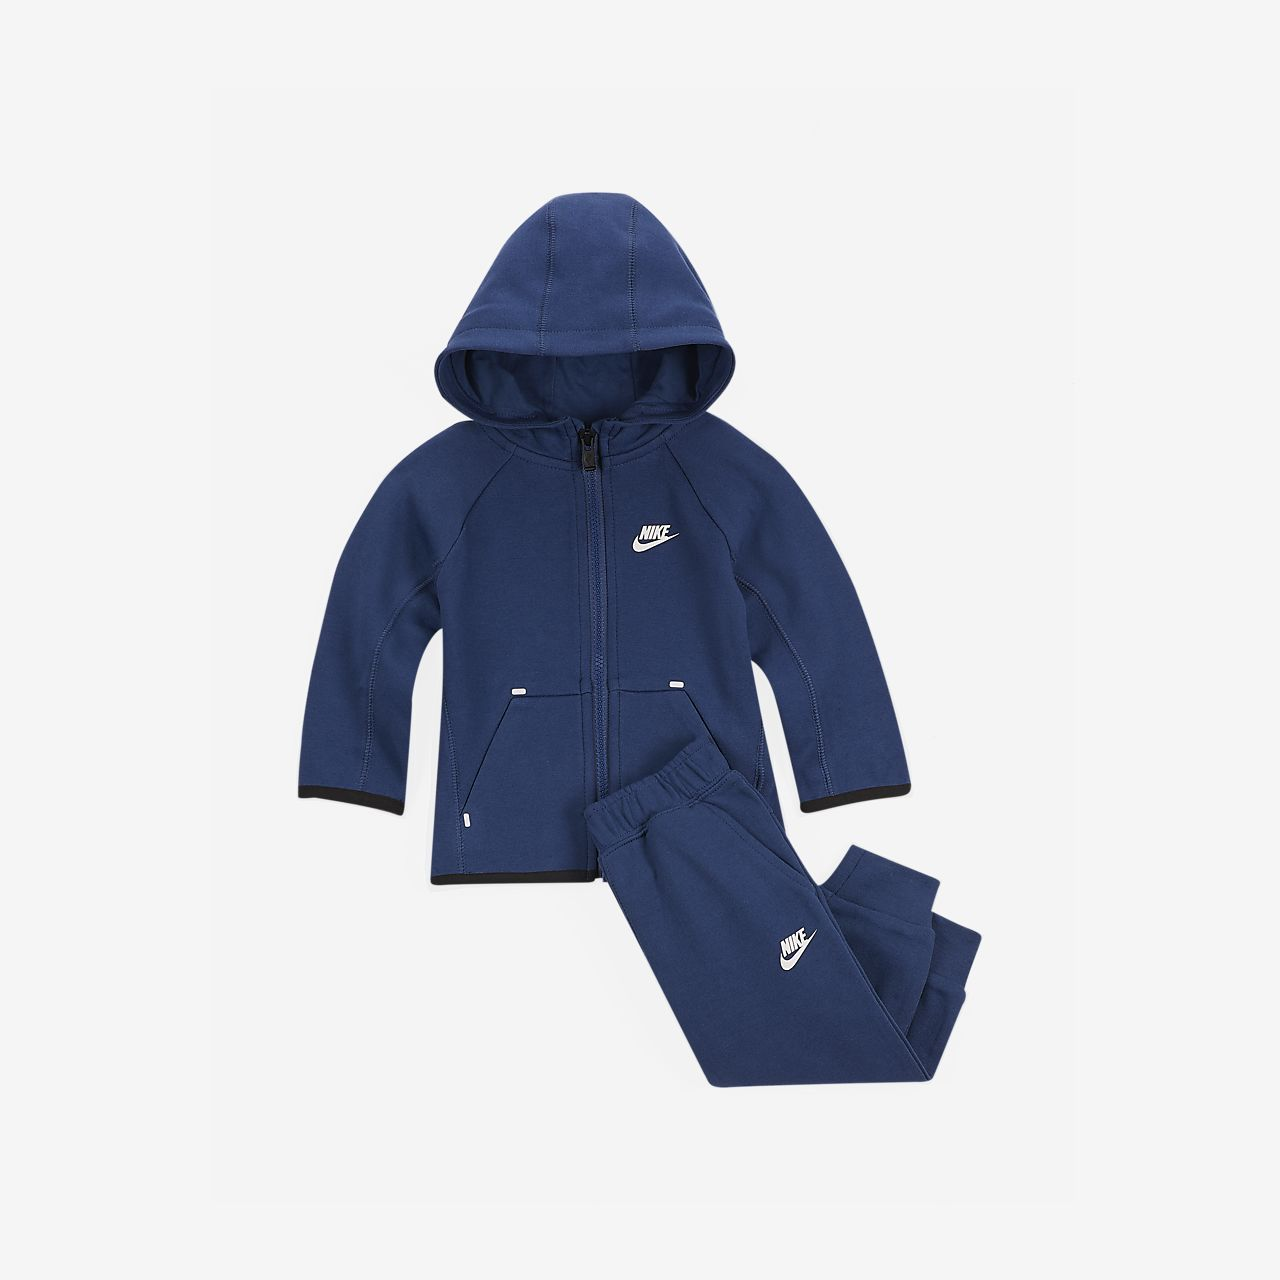 Purchase Infant Nike Tech Fleece Suit Up To 66 Off